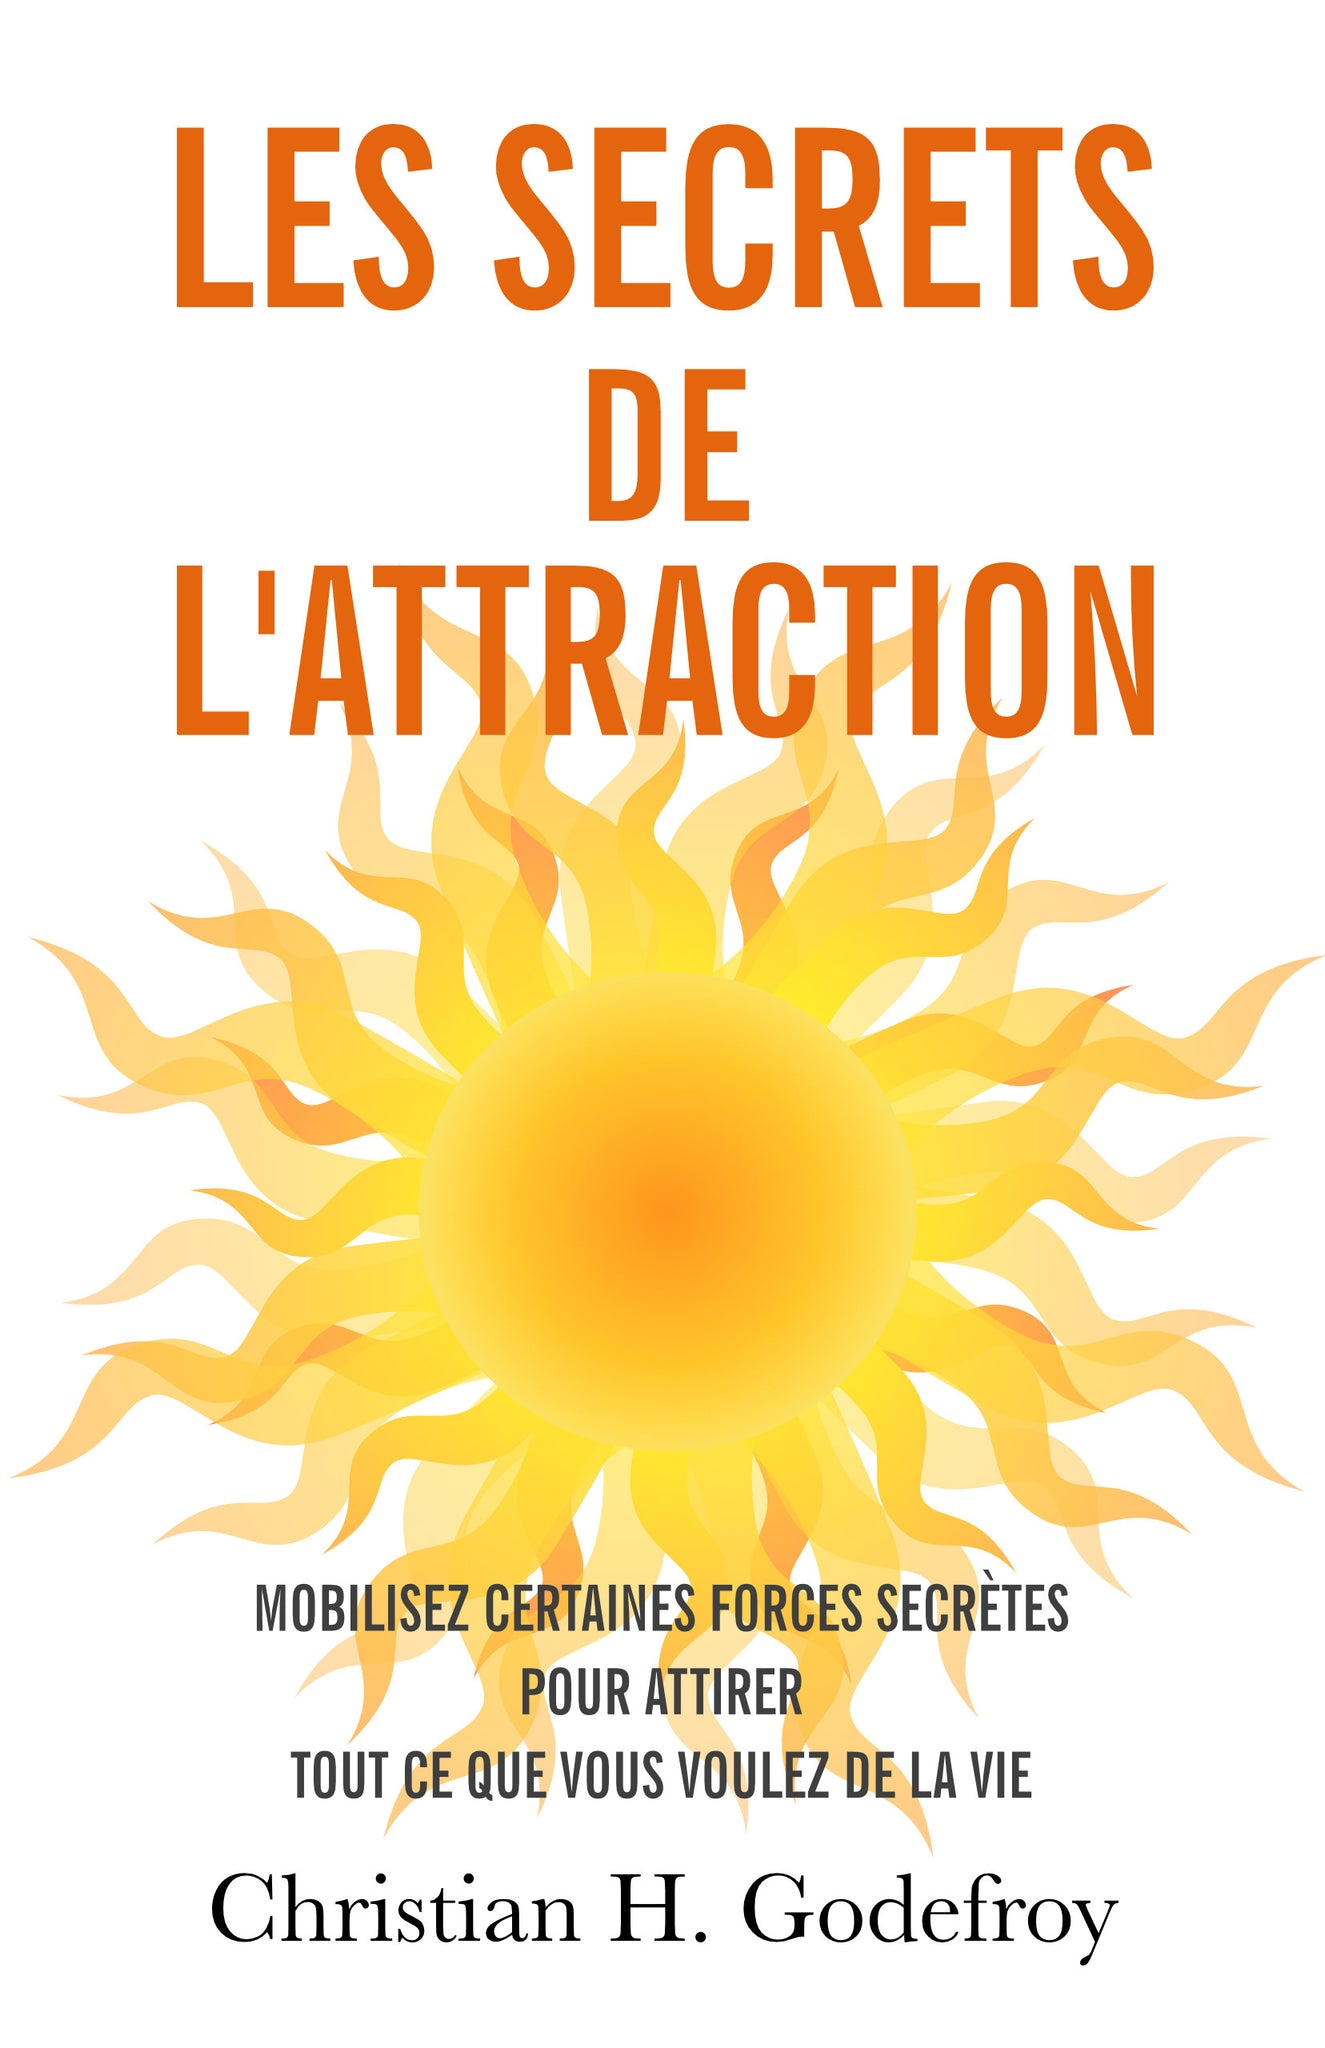 Les secrets de l'attraction - papier